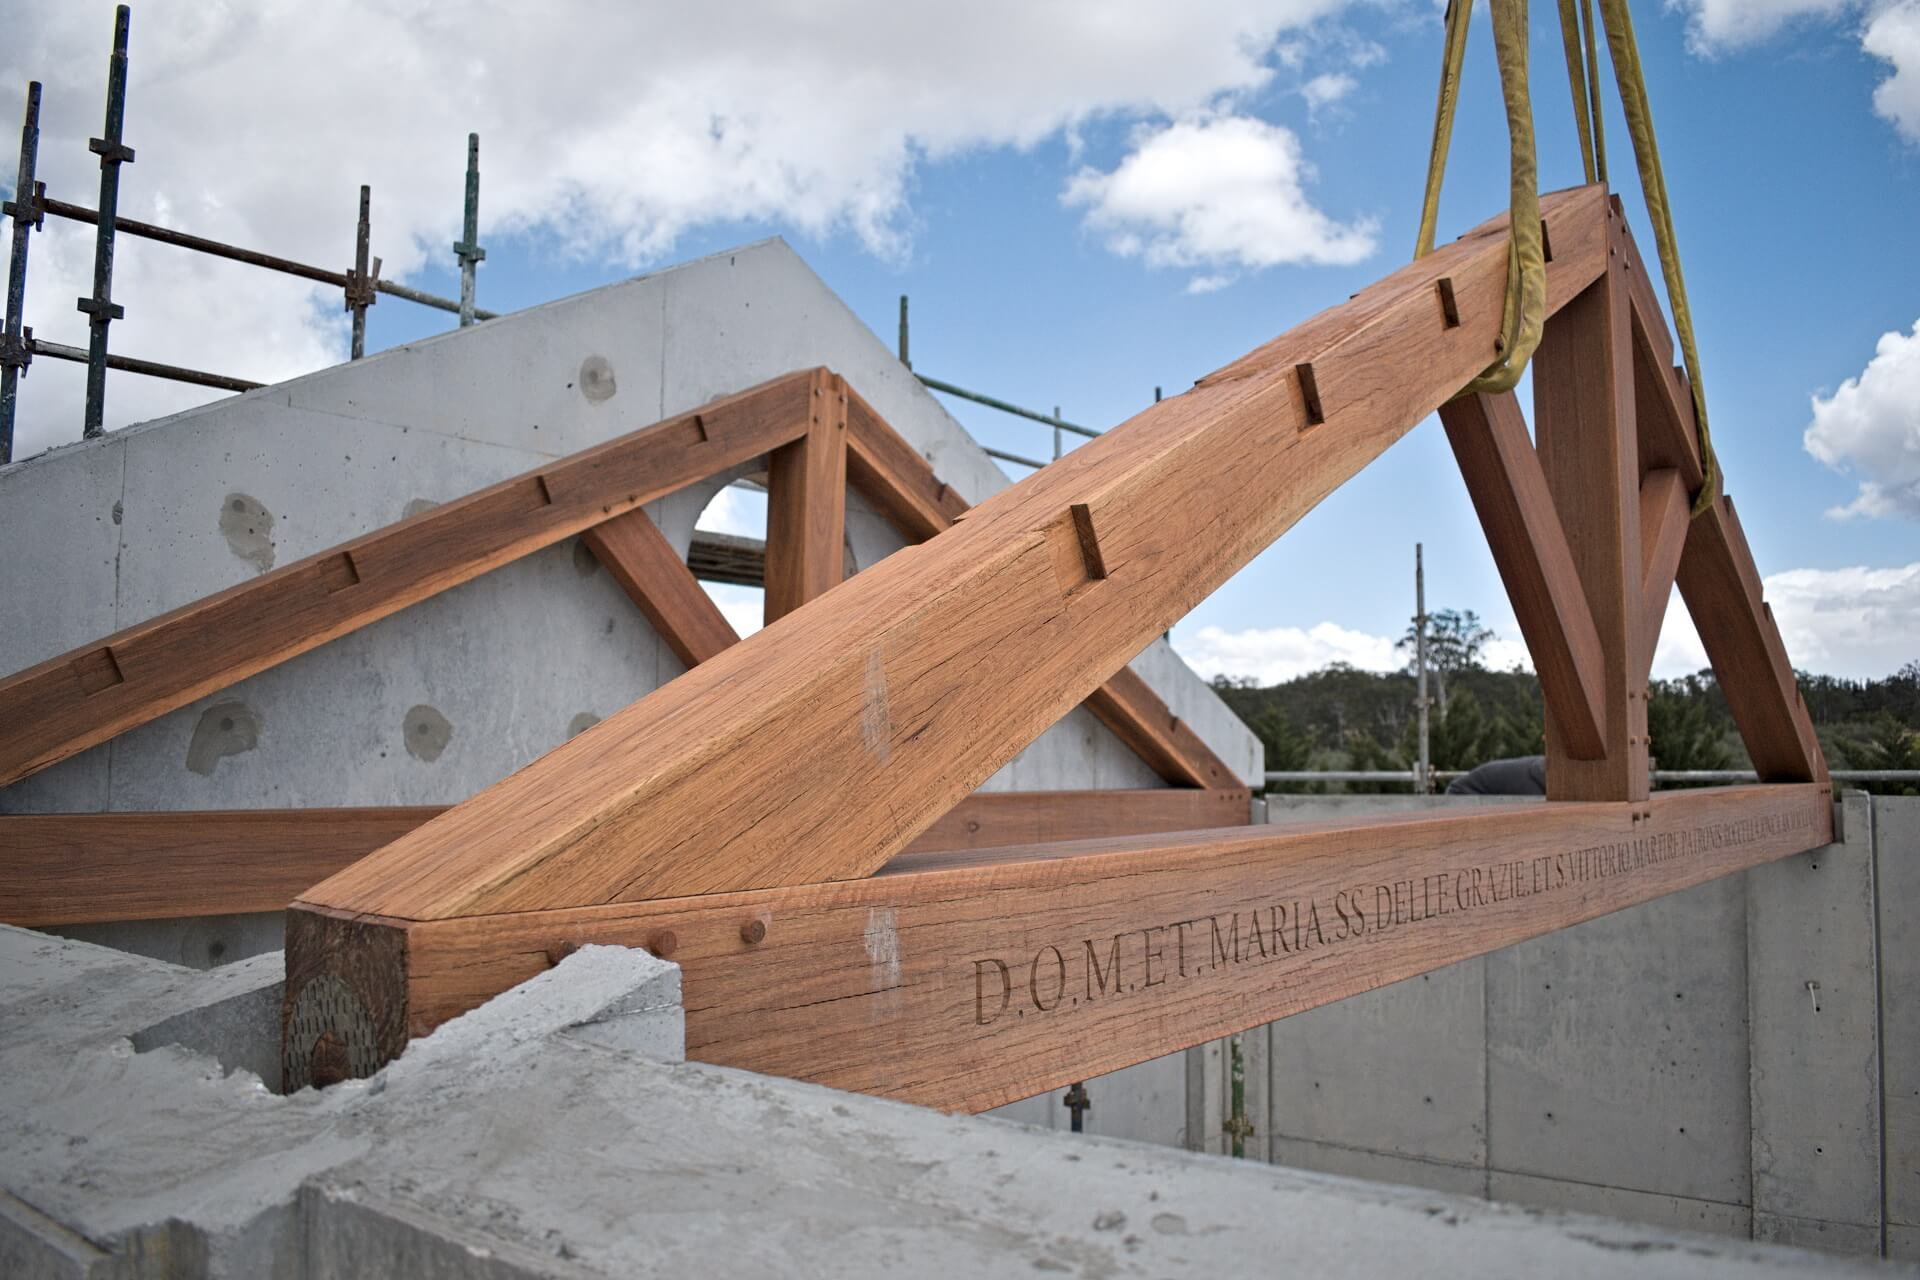 Traditional spotted gum trussed are craned into position on top the pre-formed concrete walls of the chapel. Visible is a hand carved inscription in the beam in Italian